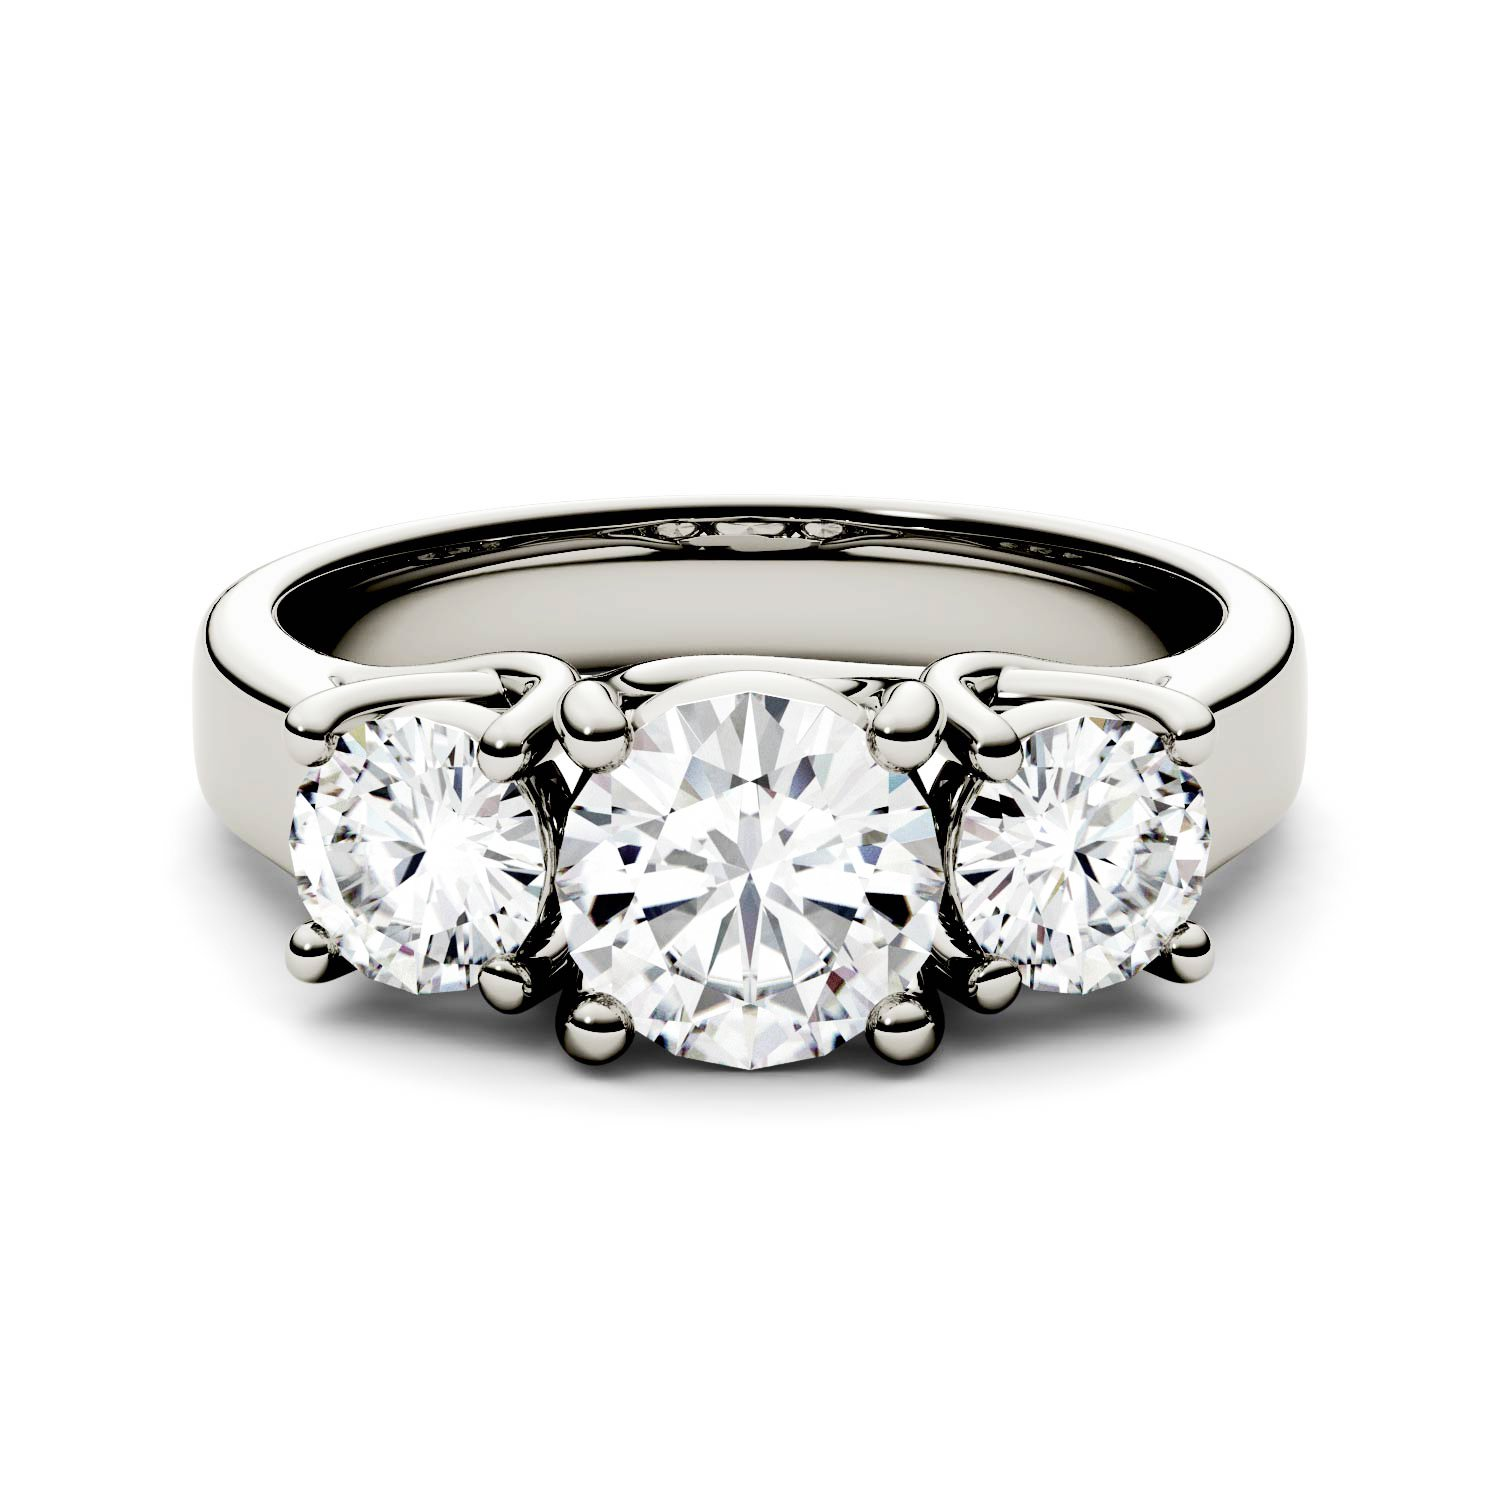 Forever One Round 6 5mm Three Stone Moissanite Ring, 2 00cttw DEW (DEF) by  Charles & Colvard